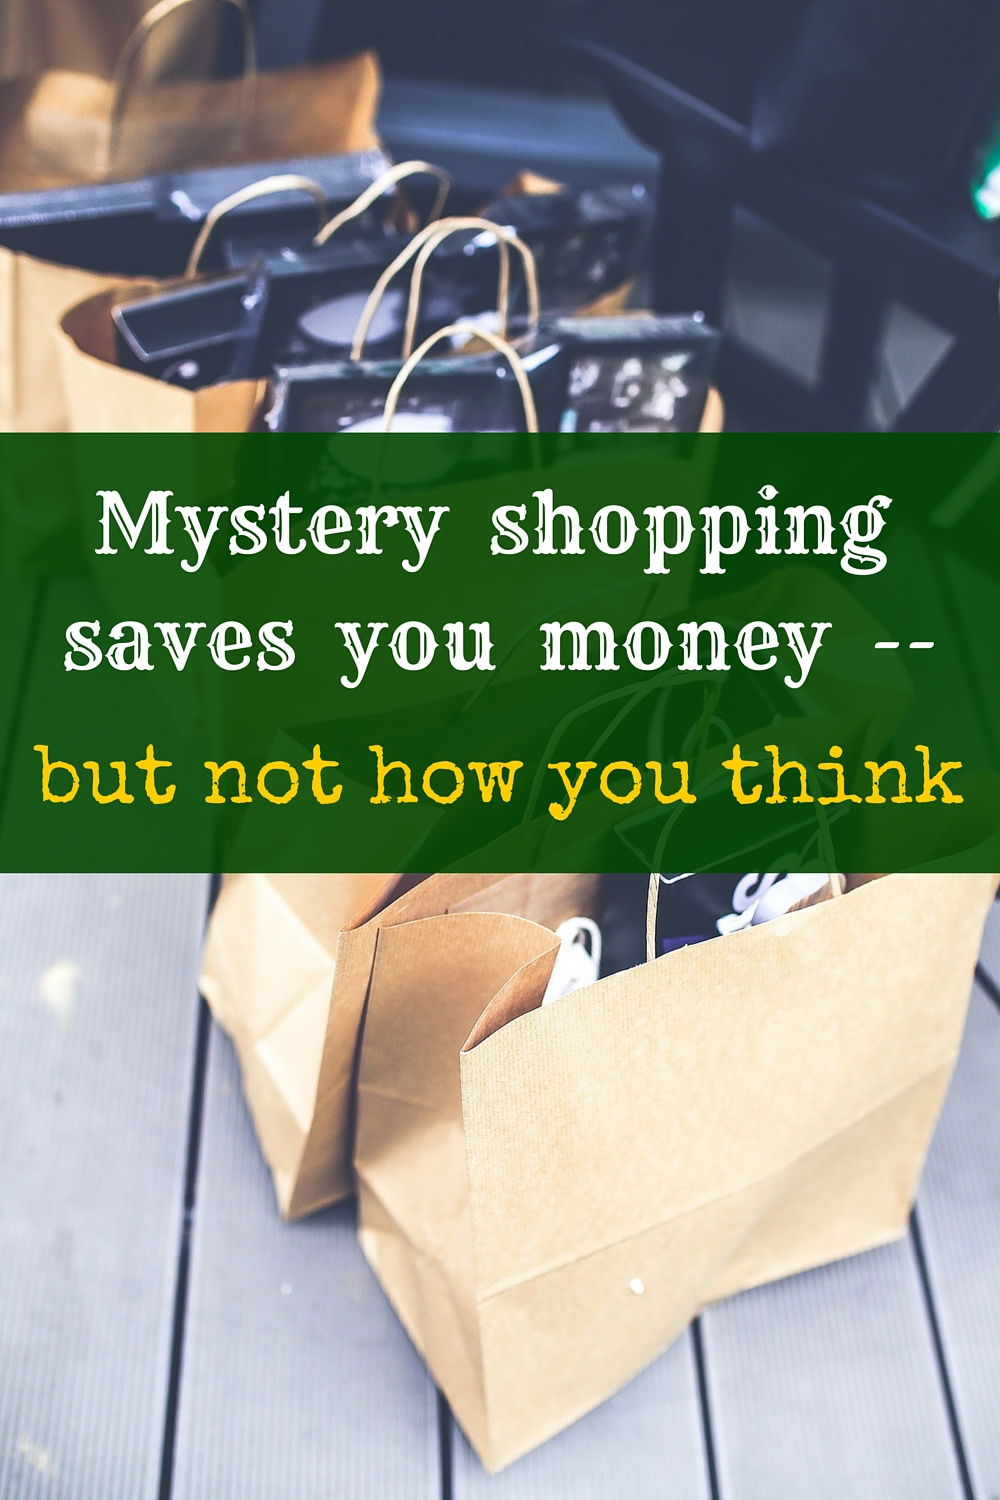 Mystery shopping can be a great frugal hack. But it can also save you money, in a way you wouldn't expect.